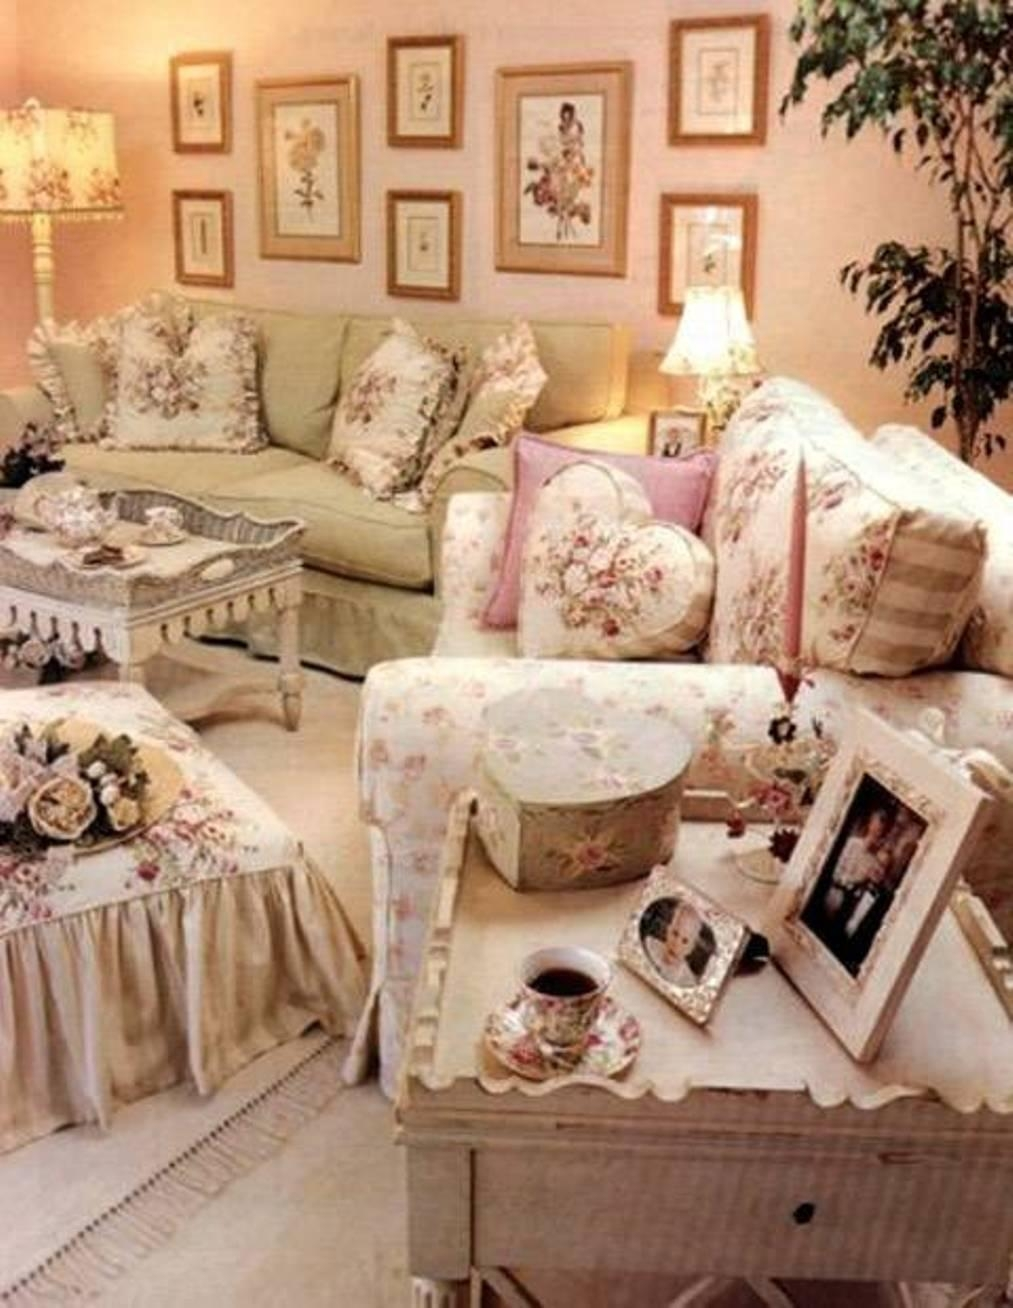 20 ideas of vintage style wall art wall art ideas for Vintage chic living room ideas